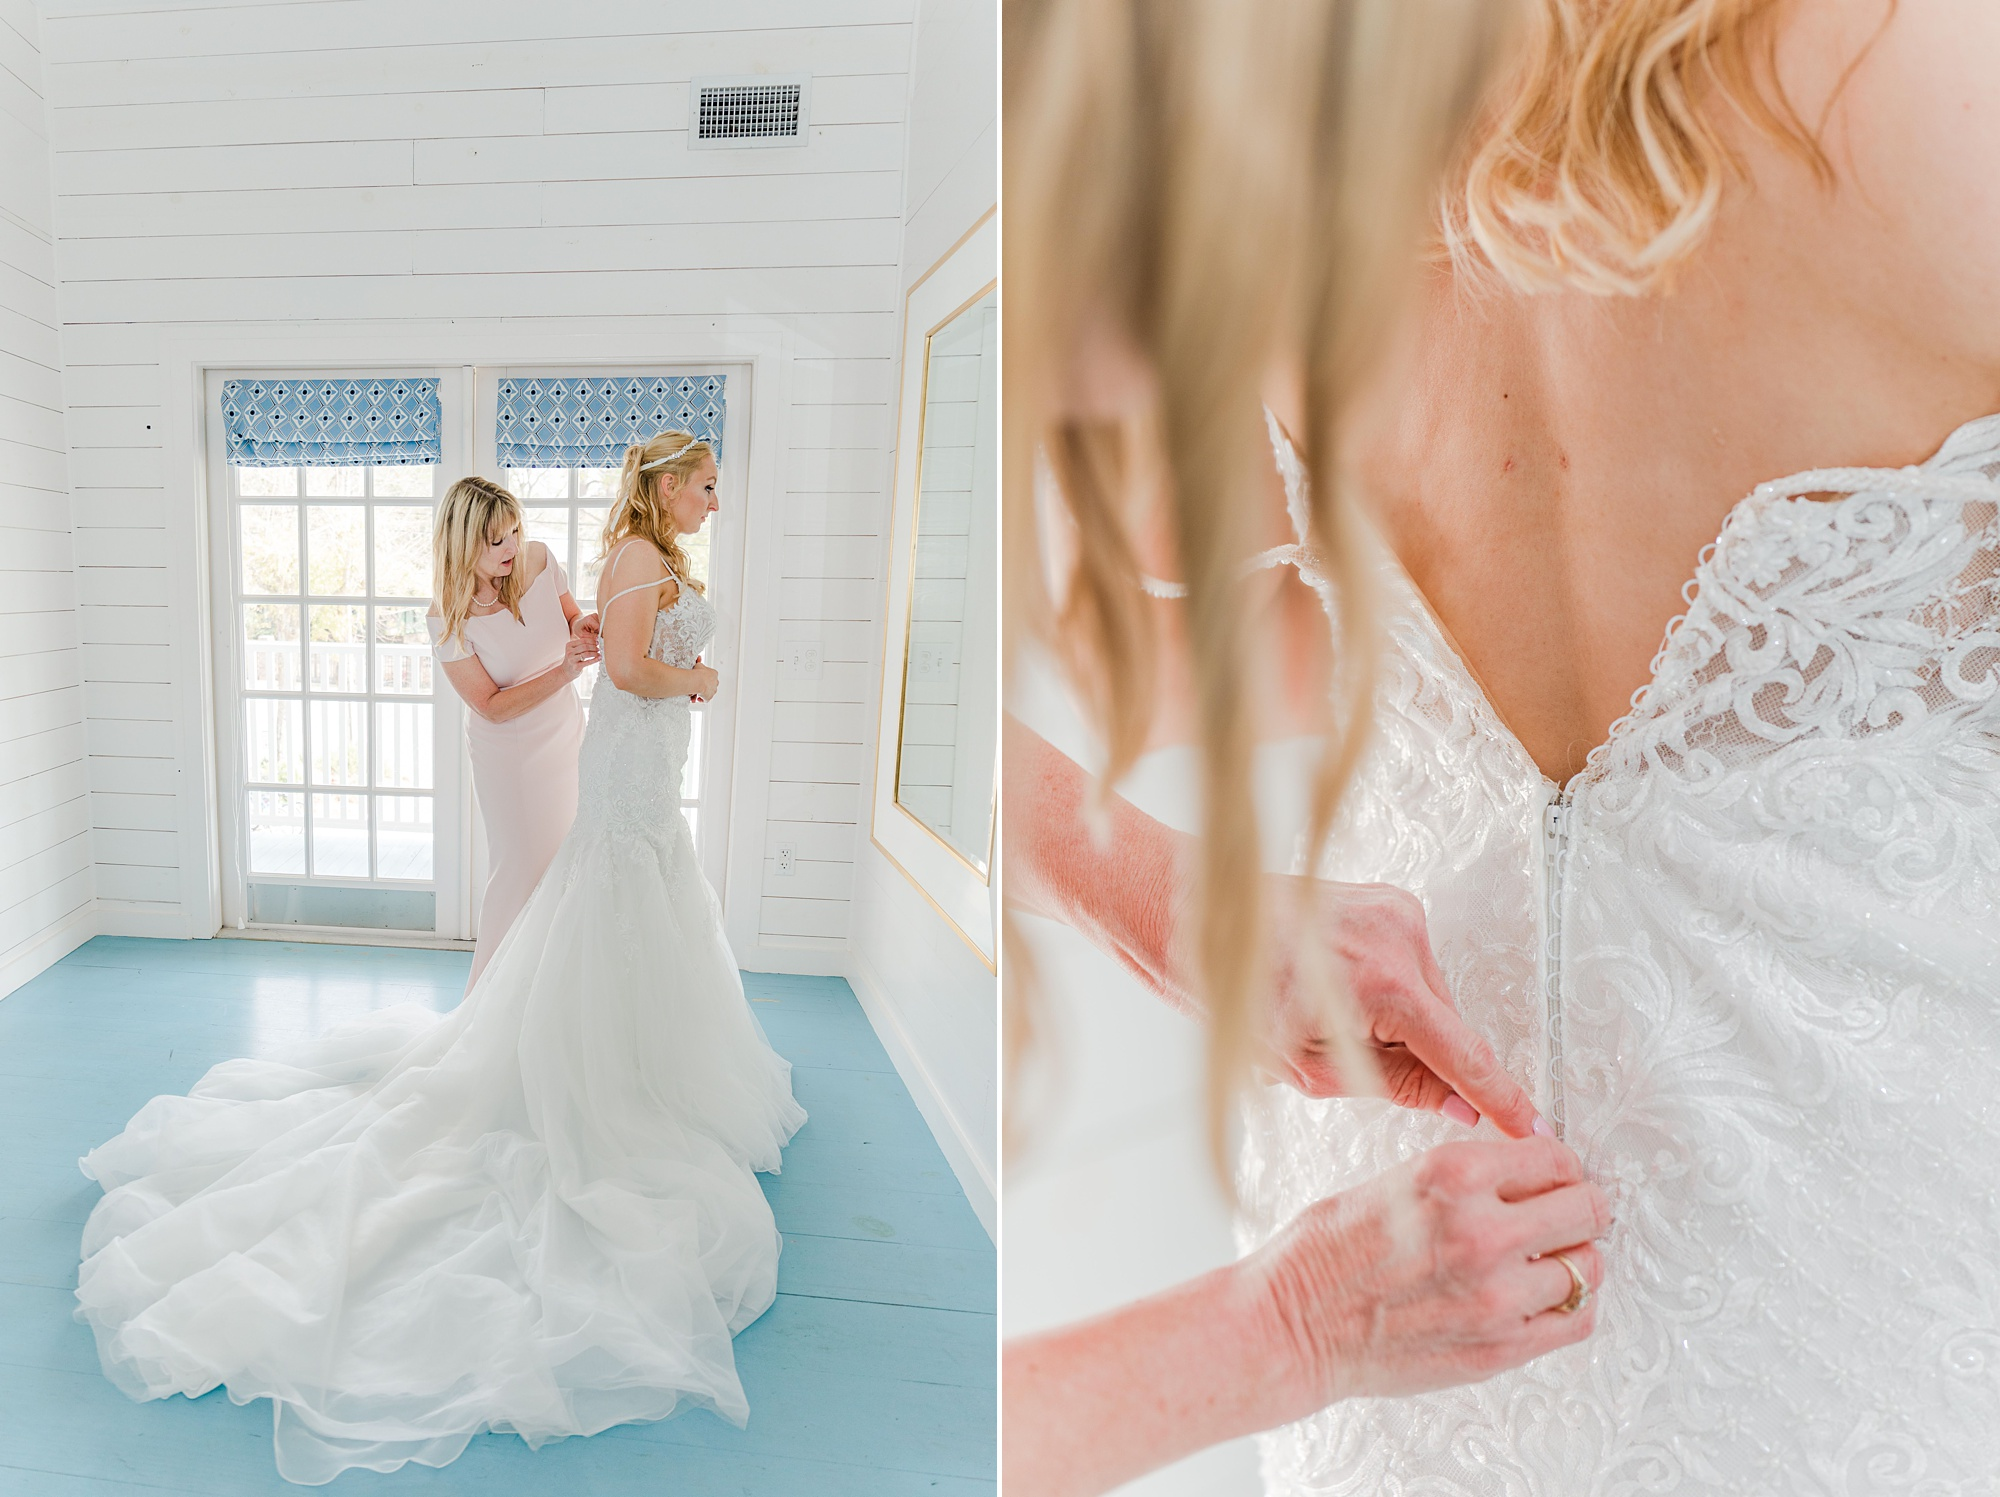 bride gets into wedding dress with mother's help